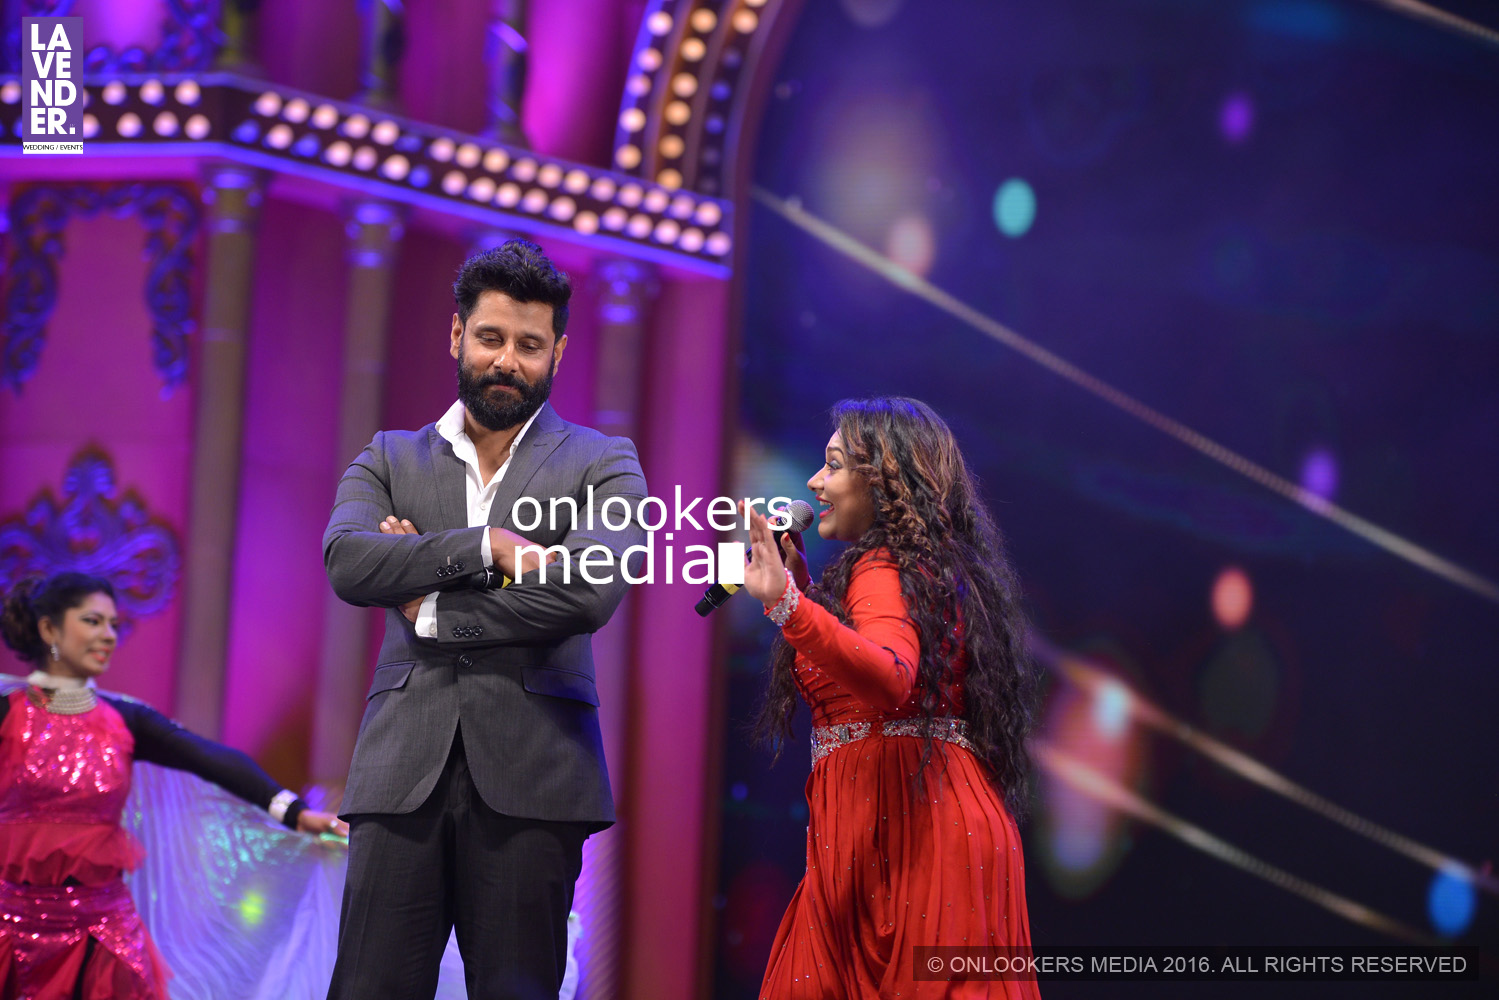 http://onlookersmedia.in/wp-content/uploads/2016/02/Vikram-at-Asianet-Film-Awards-2016-23.jpg